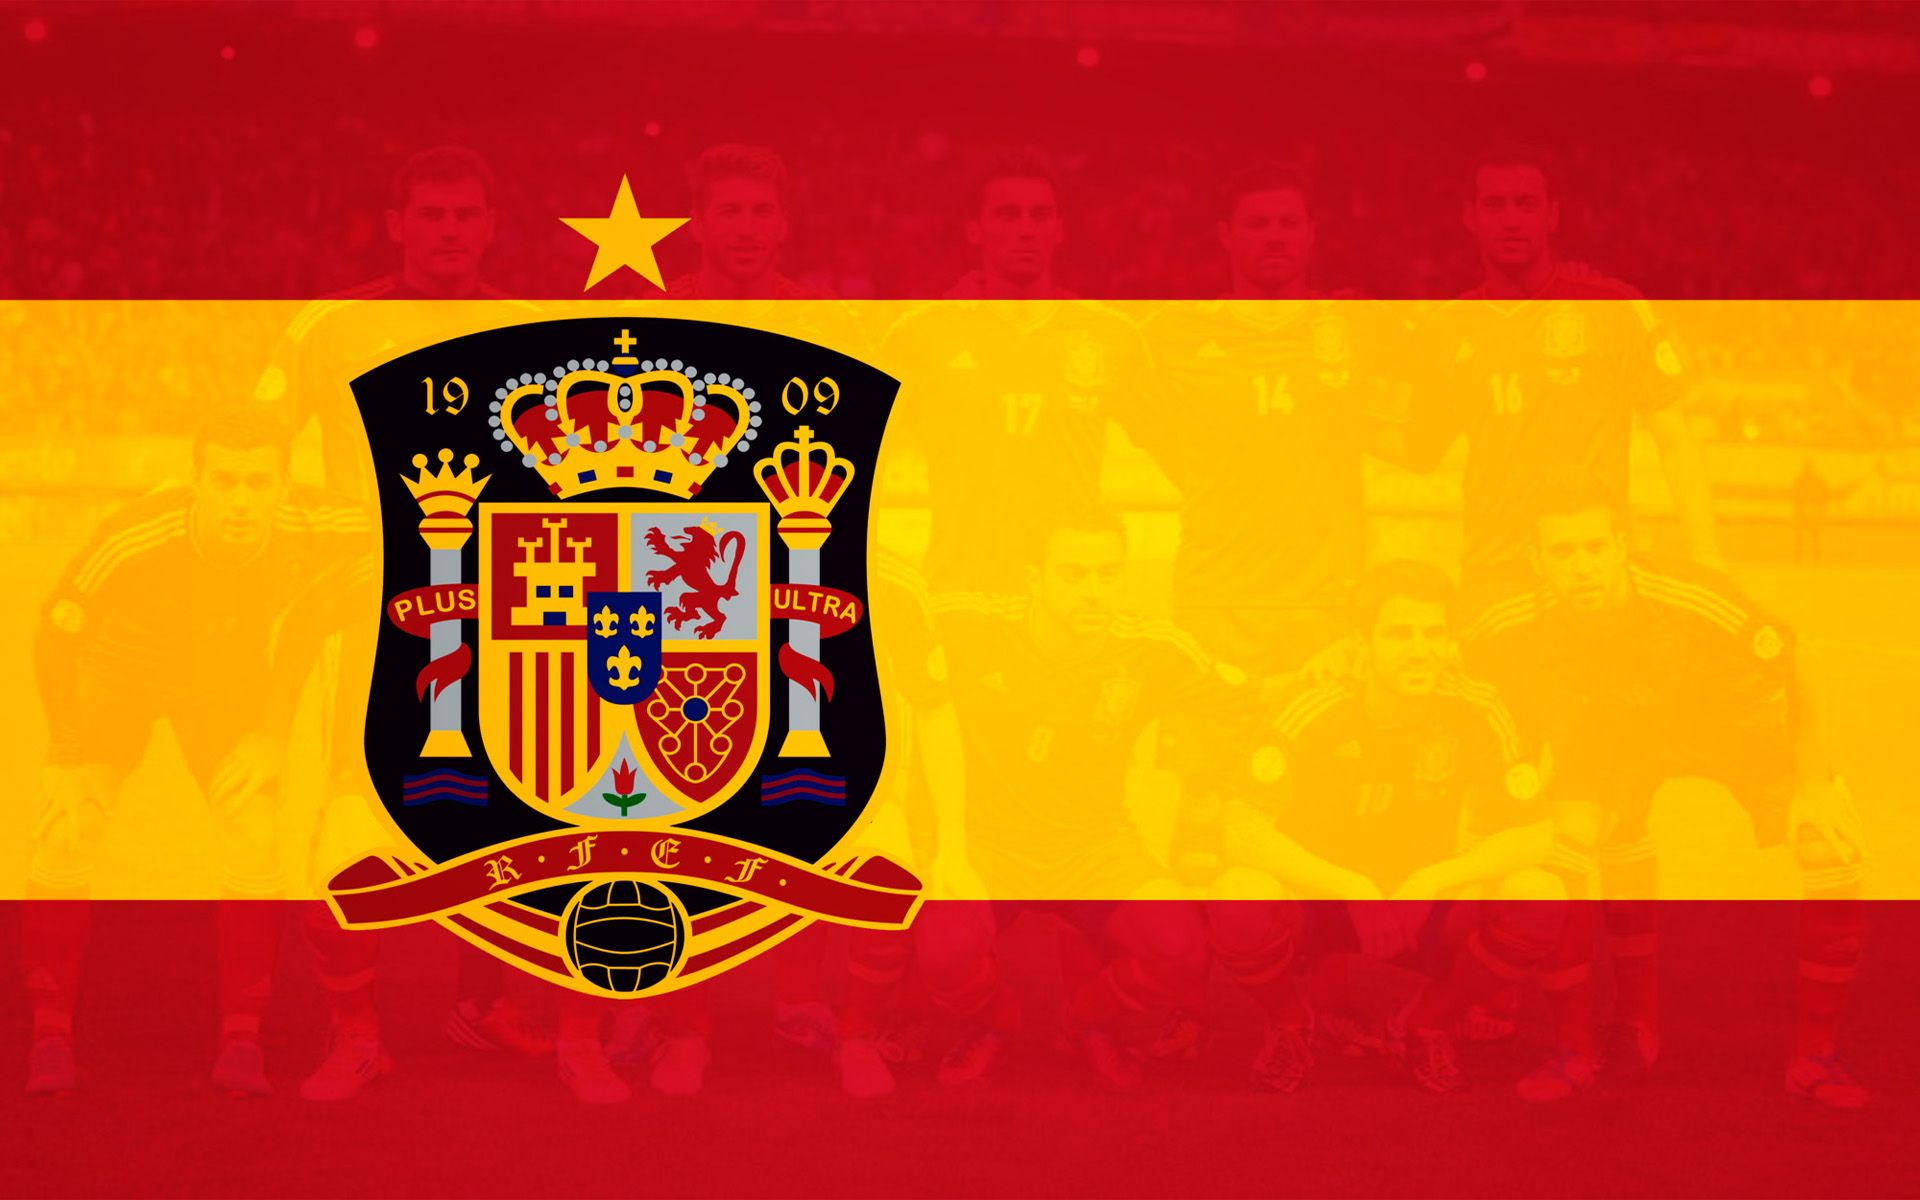 spain national football team wallpapers find best latest spain